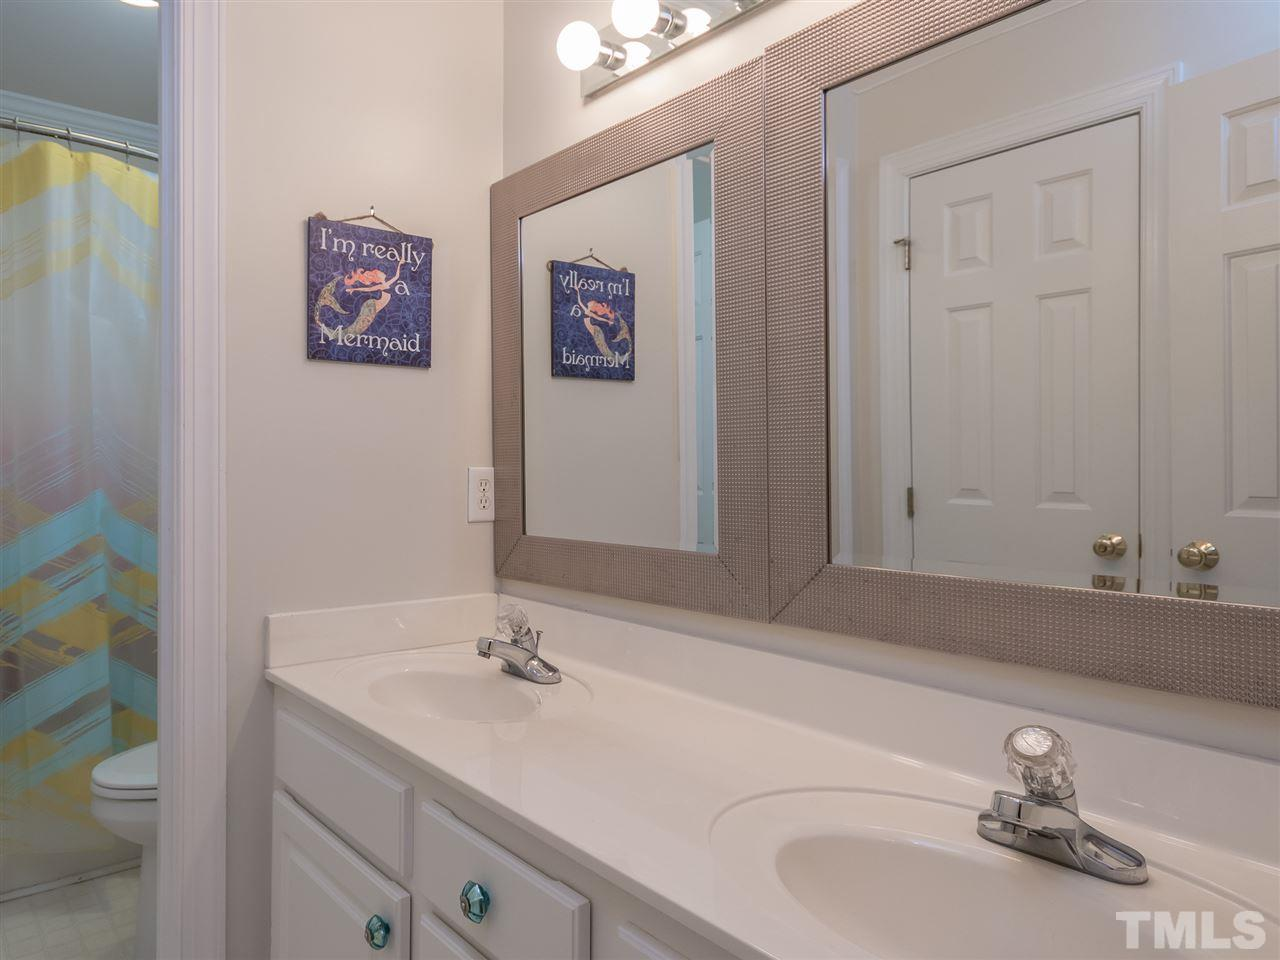 Hall bathroom for the secondary bedrooms - dual vanities, separate tub/shower and toilet room. Direct access from the hall and to the oversized bonus room next door.